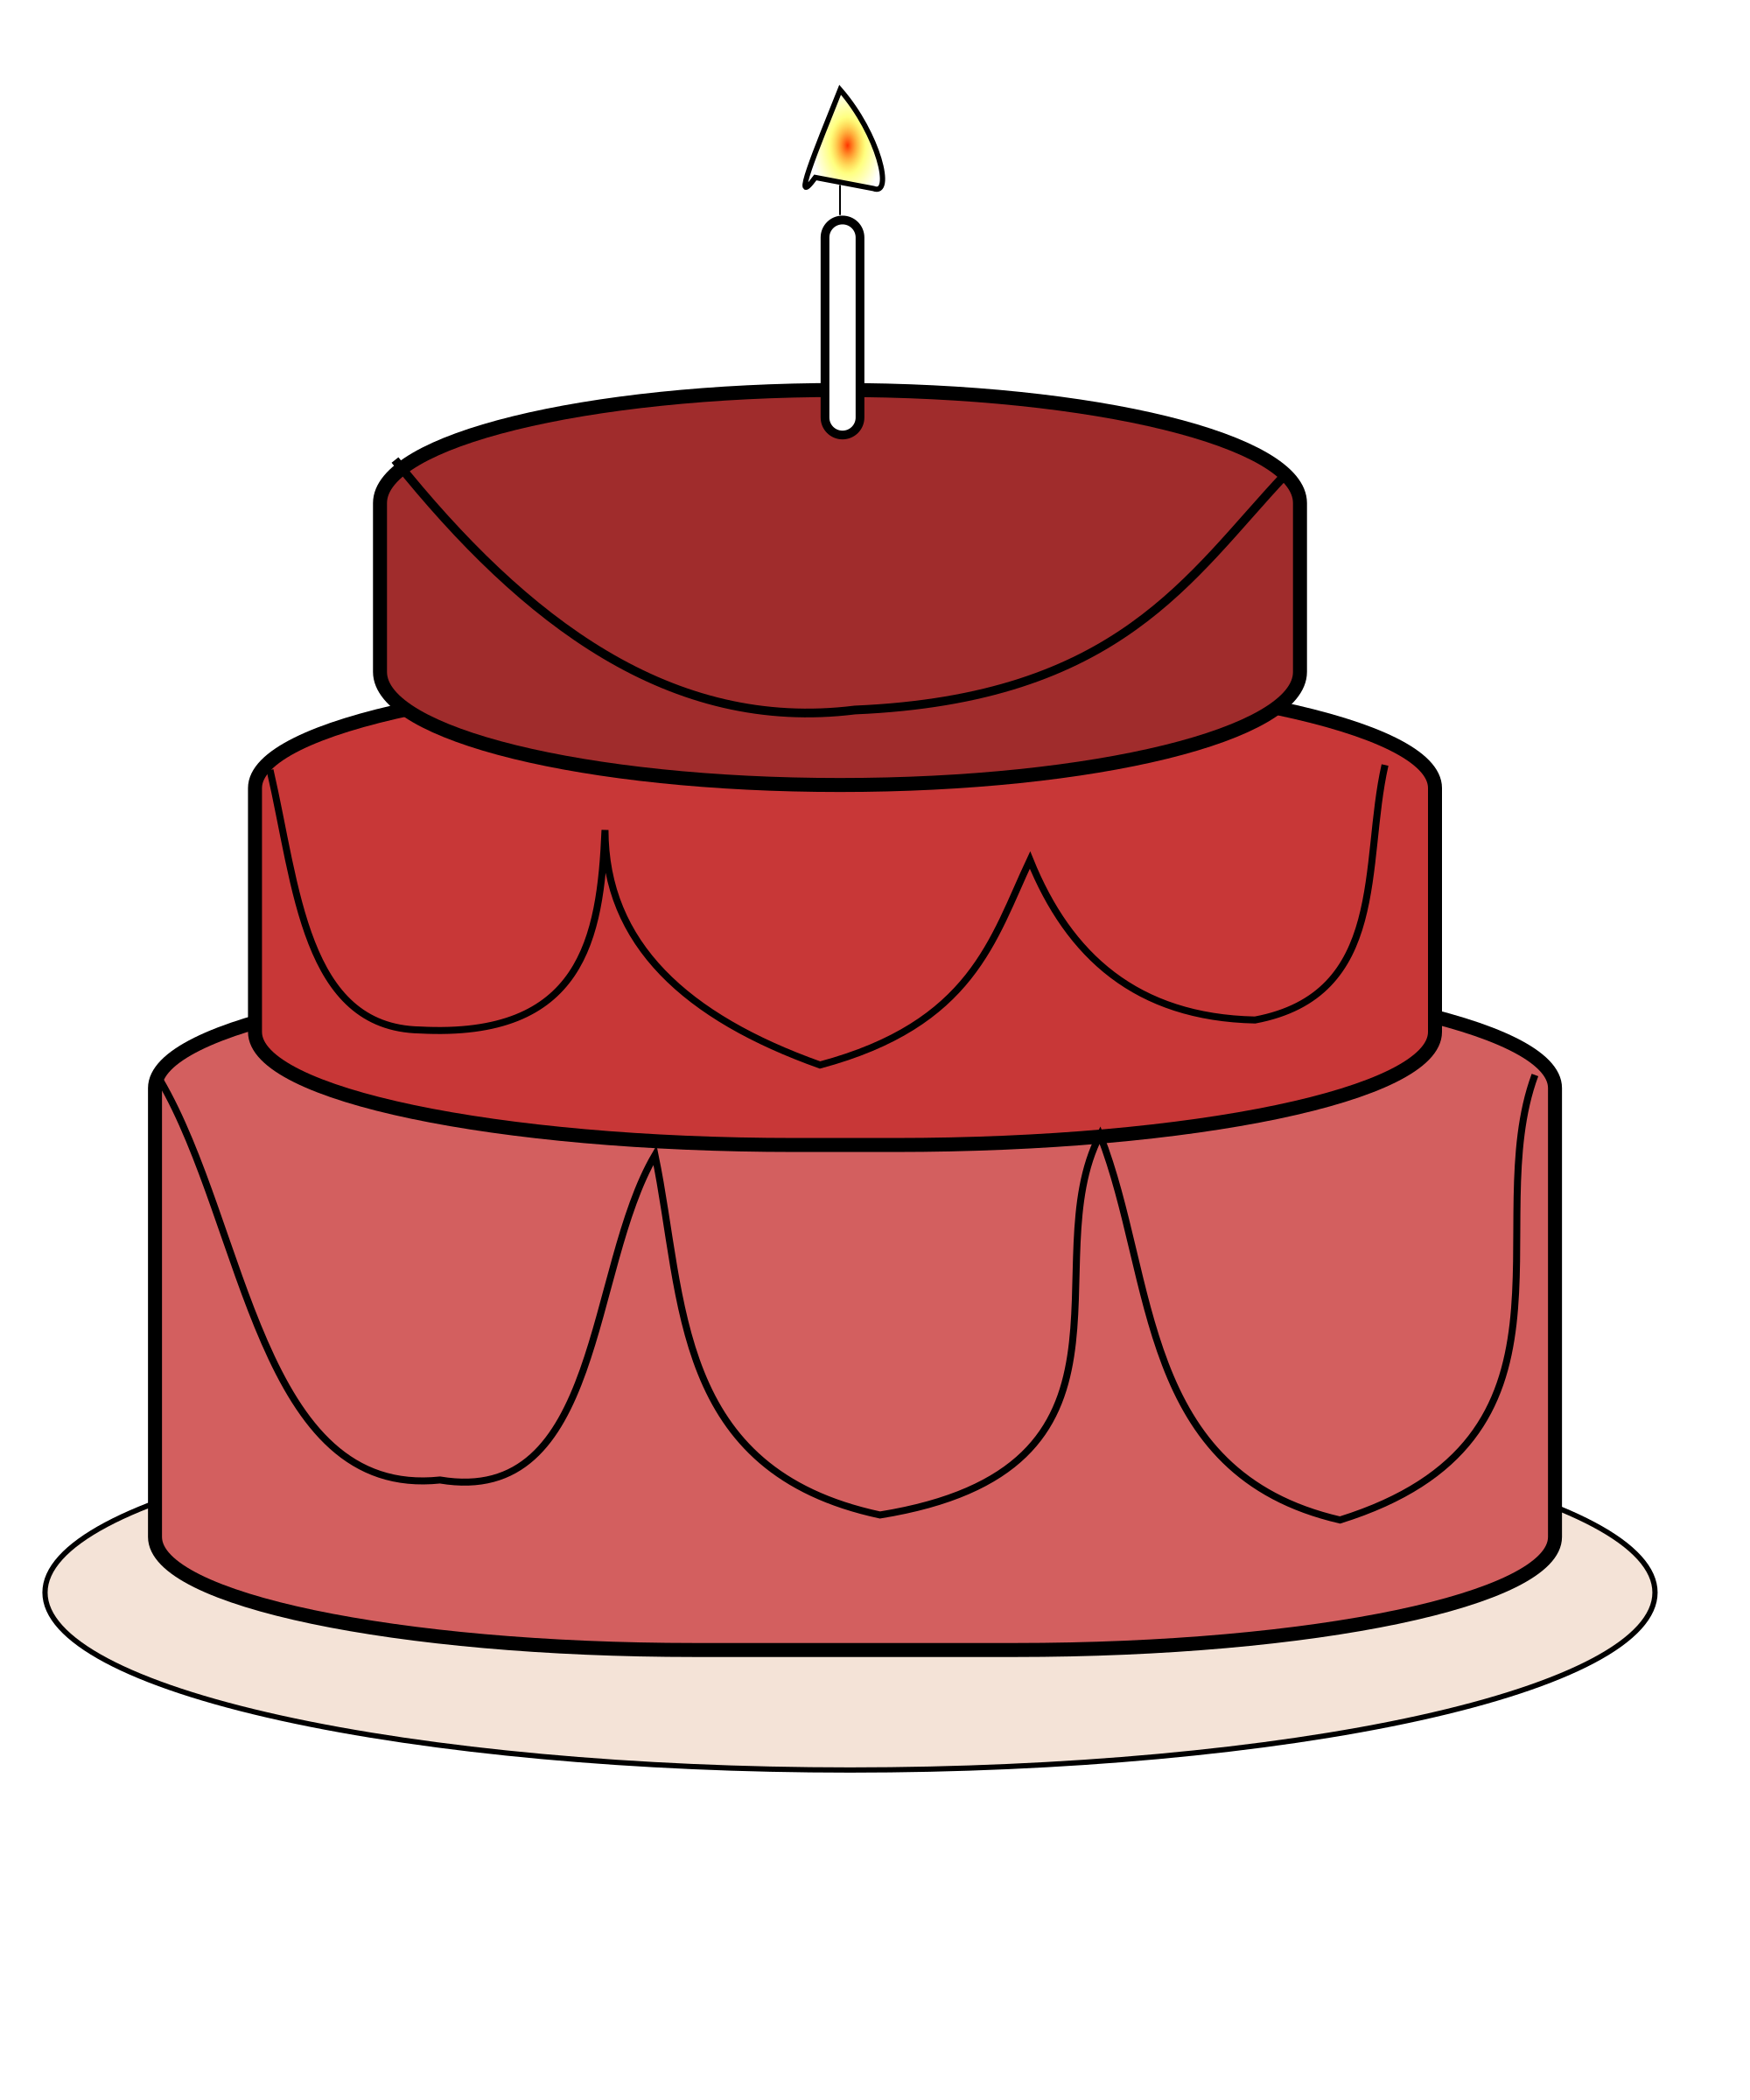 Birthday Cake Vector Image image Free stock photo Public Domain